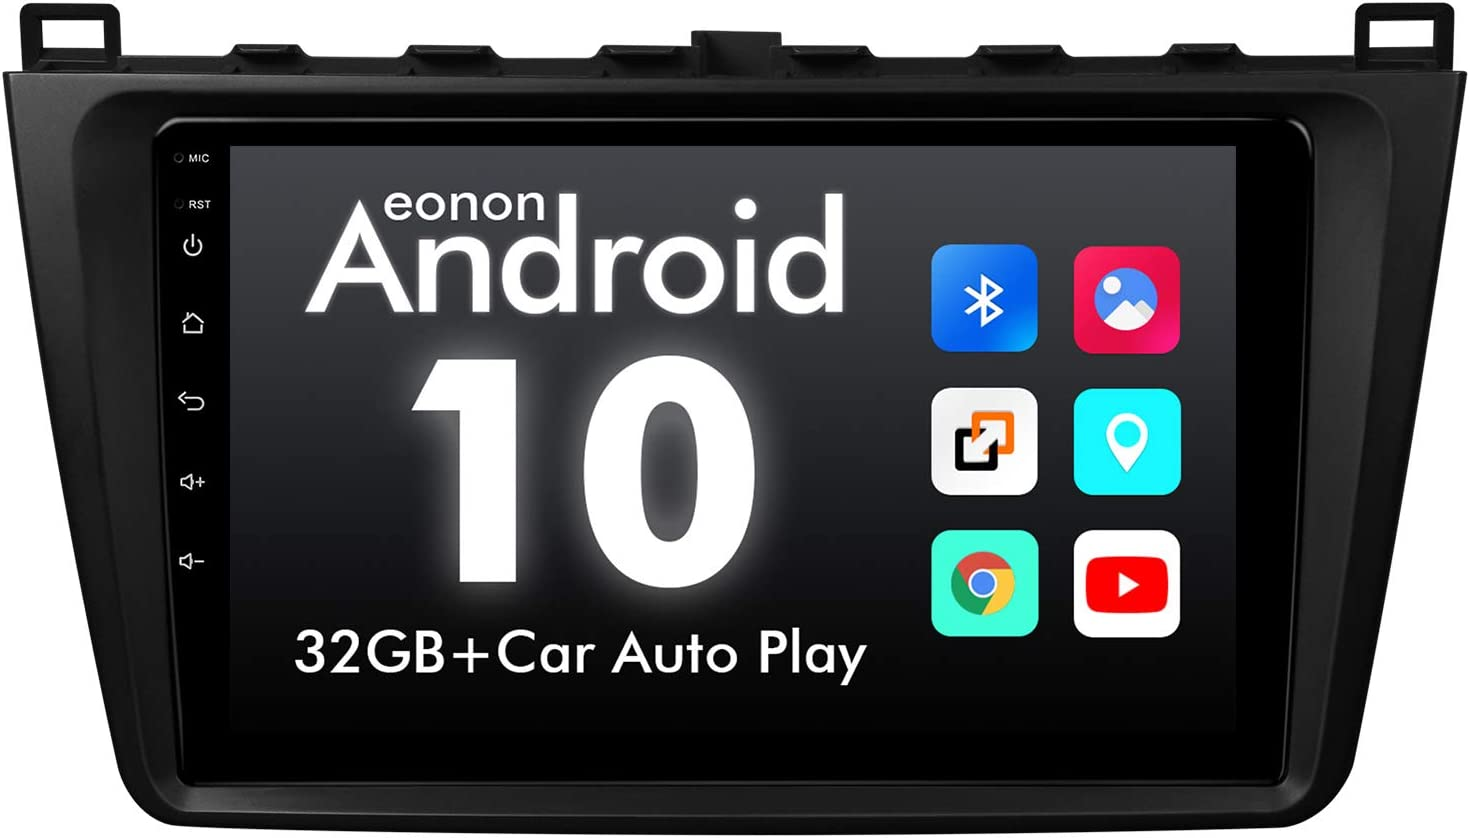 2020 Newest Android Car Stereo Android 10 Car Stereo,Eonon Mazda 6 2009-2012 Android 10 Car Stereo 9 Inch IPS HD Full Touchscreen Car GPS Navigation Built-in CarPlay and DSP Head Unit-GA9498B